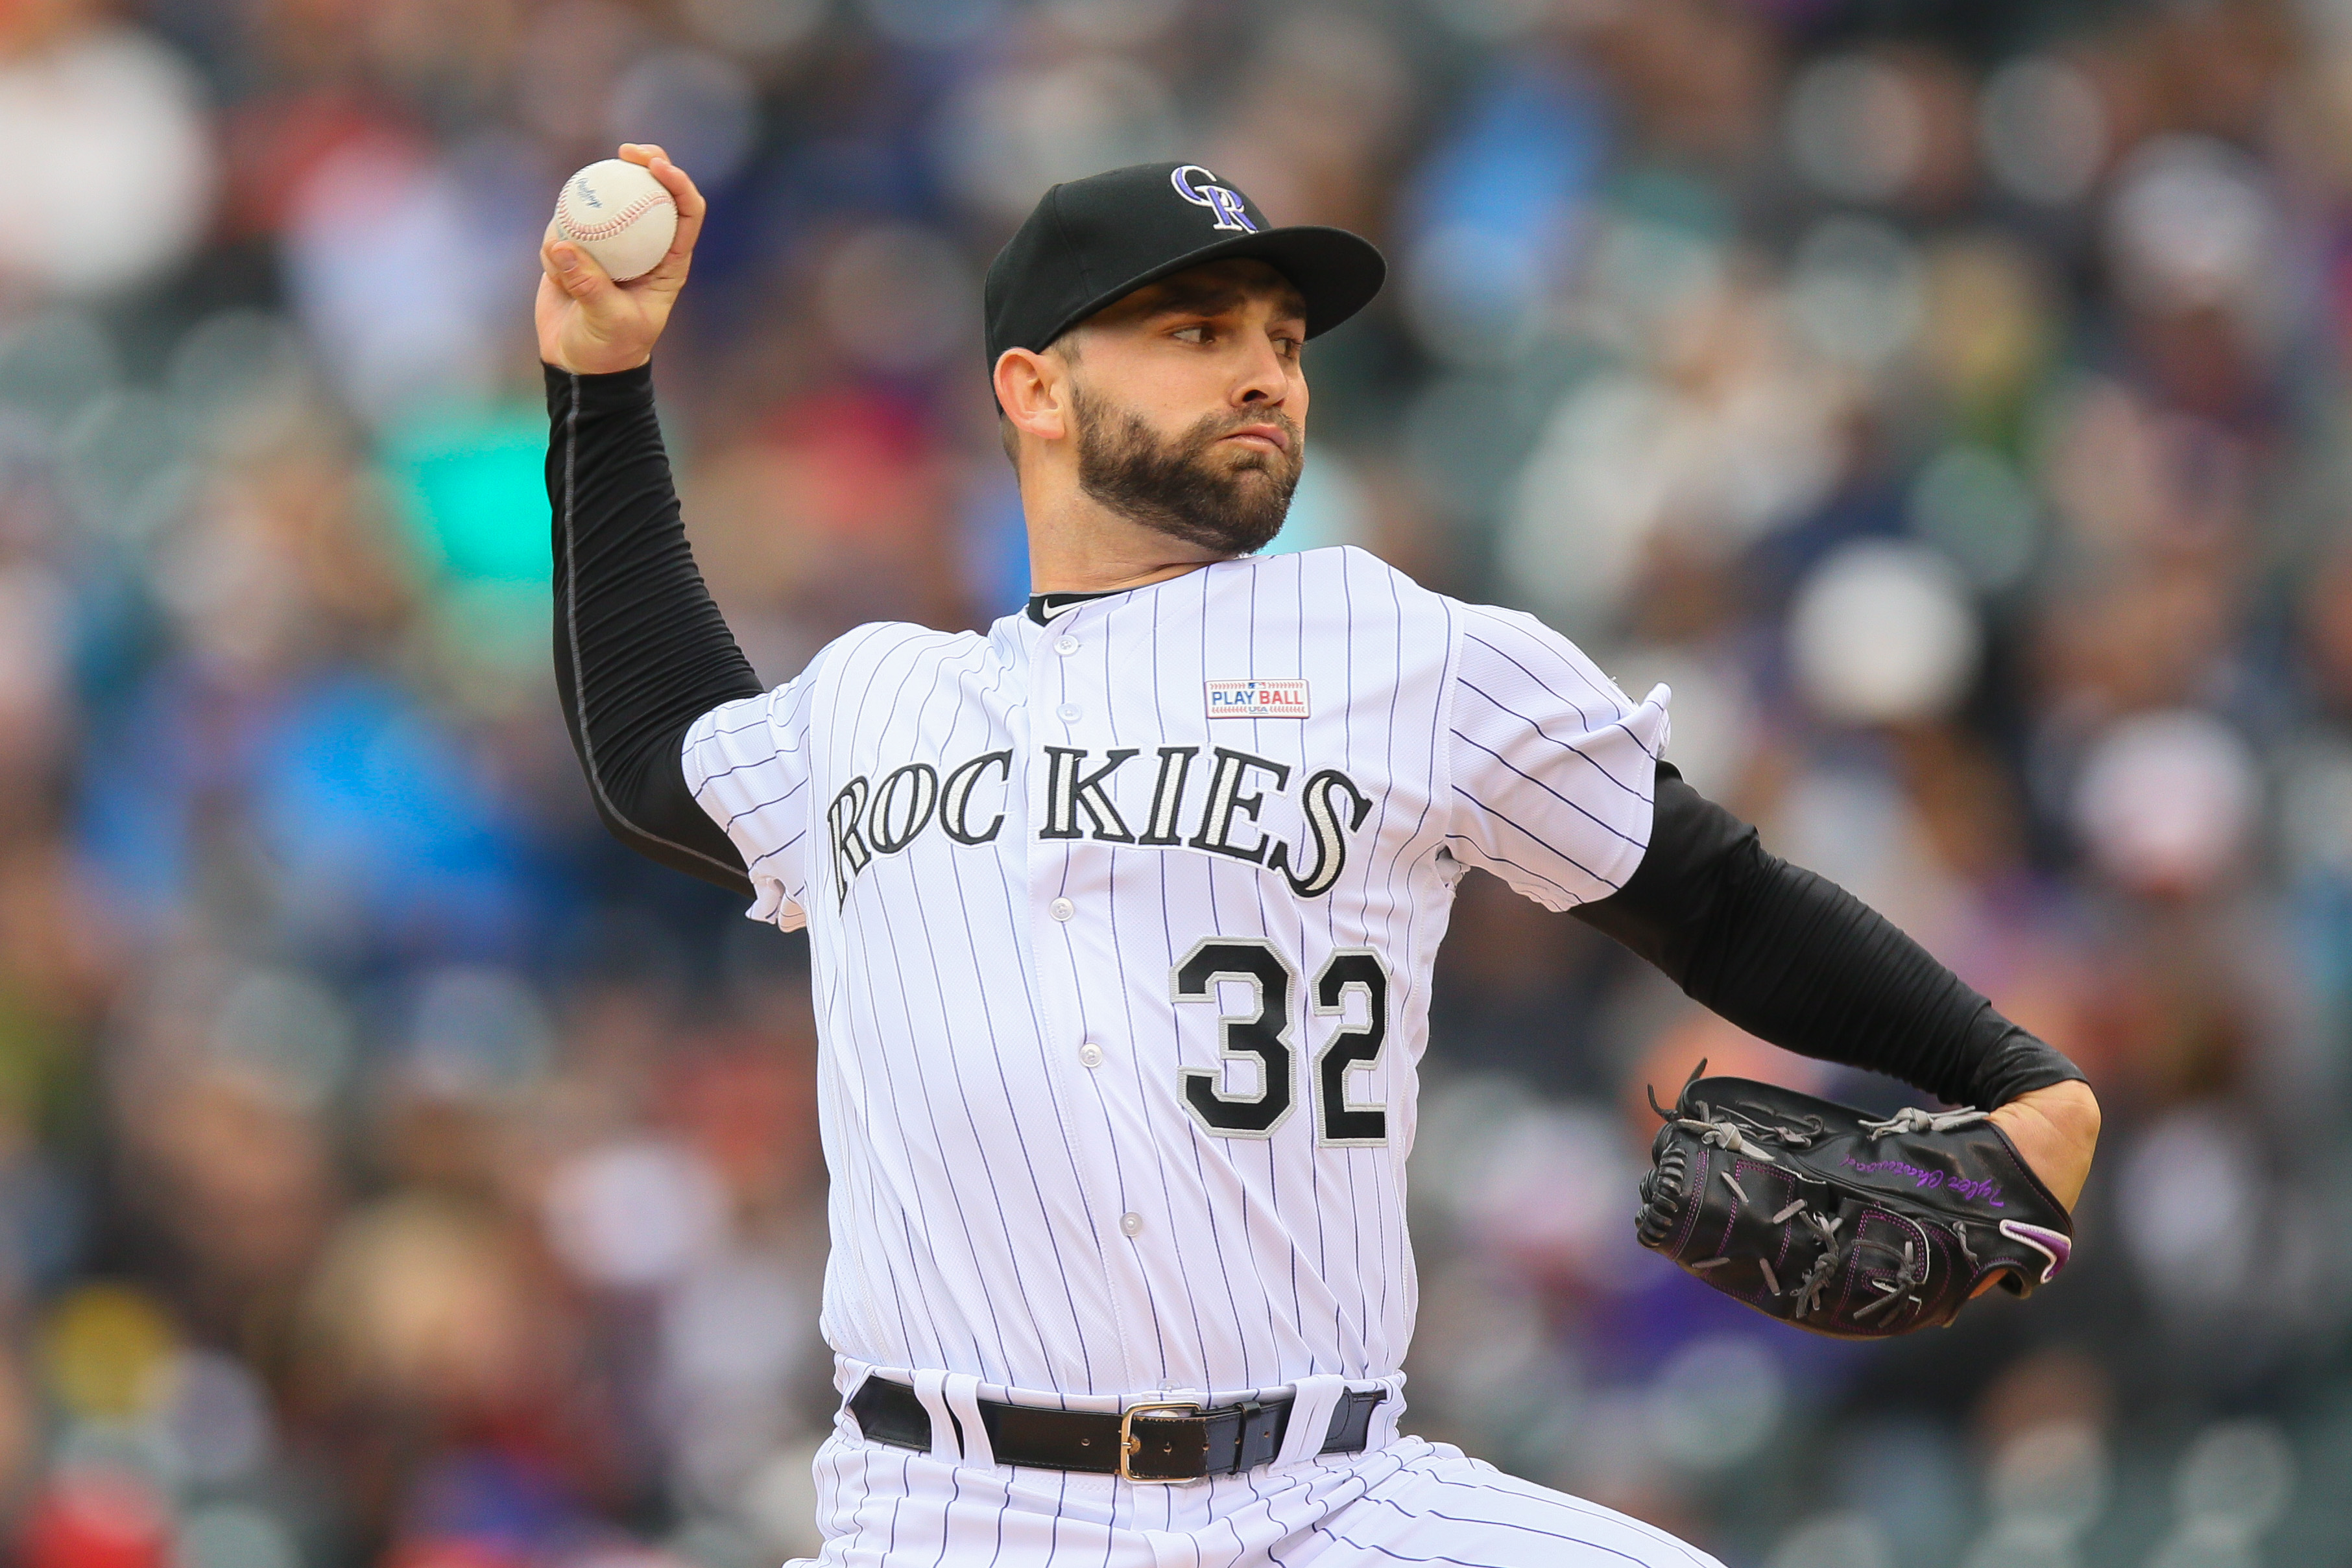 Starting pitcher Tyler Chatwood #32 of the Colorado Rockies delivers to home plate during the first inning against the New York Mets at Coors Field on May 15, 2016 in Denver, Colorado. (Photo by Justin Edmonds/Getty Images)